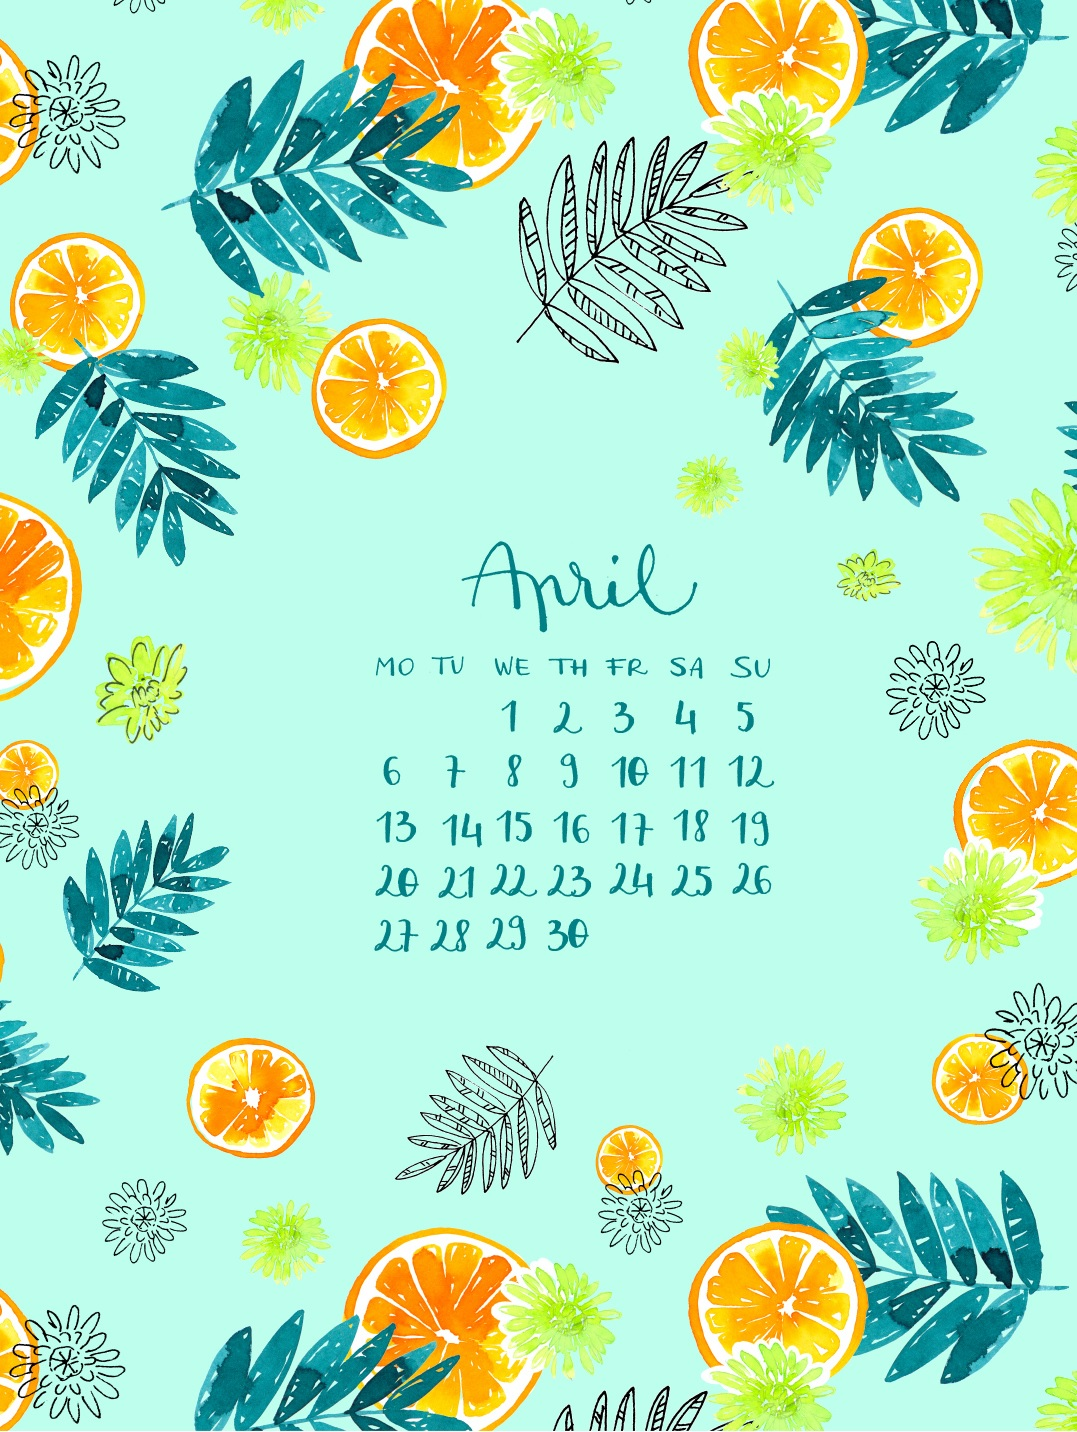 Cute April 2020 Calendar Design